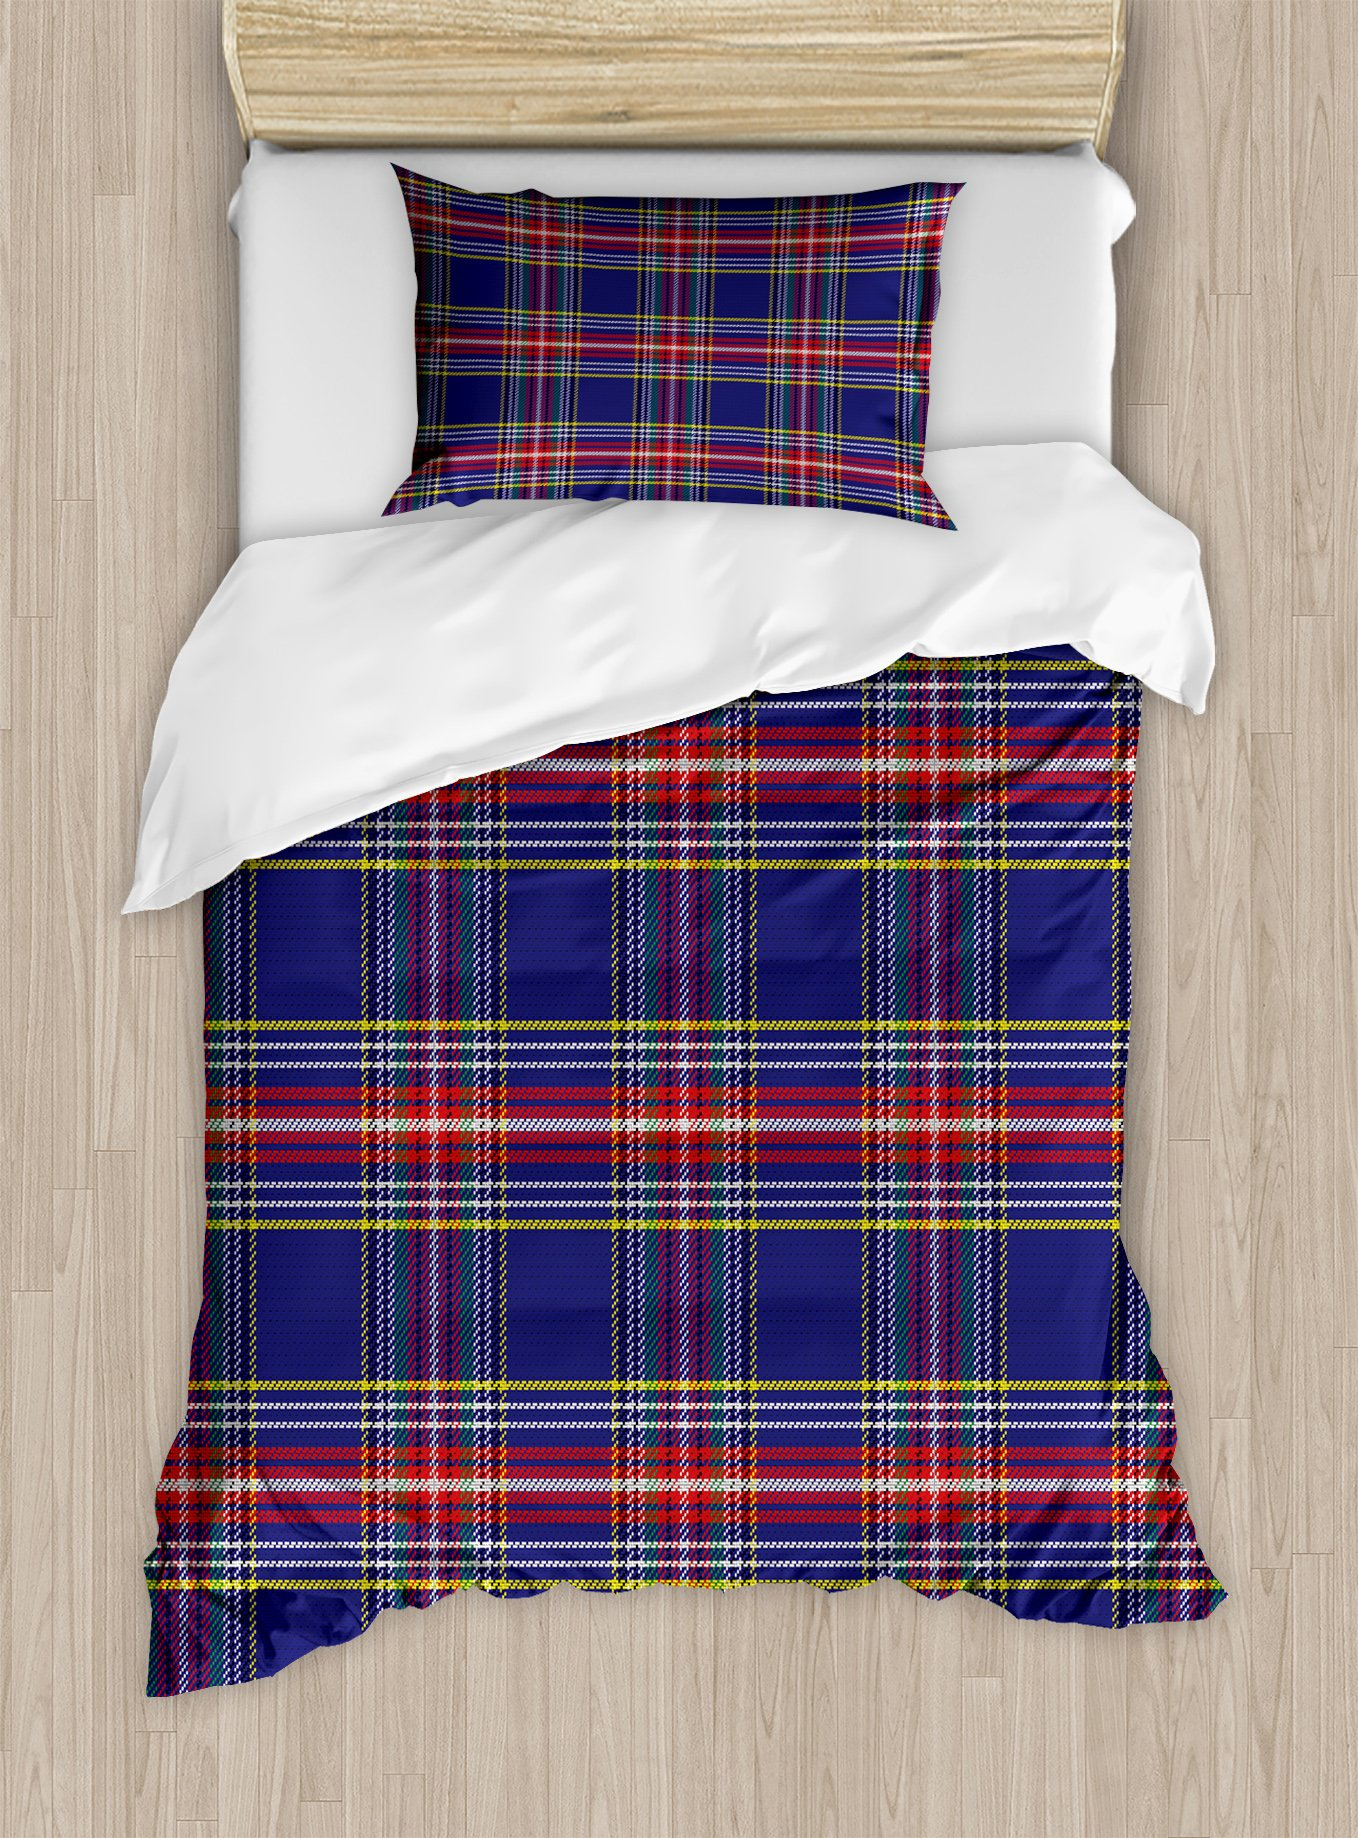 Ambesonne Plaid Duvet Cover Set Twin Size, Old Fashioned Scottish Tartan Country Style with Geometric Look Abstract Arrangement, Decorative 2 Piece Bedding Set with 1 Pillow Sham, Multicolor